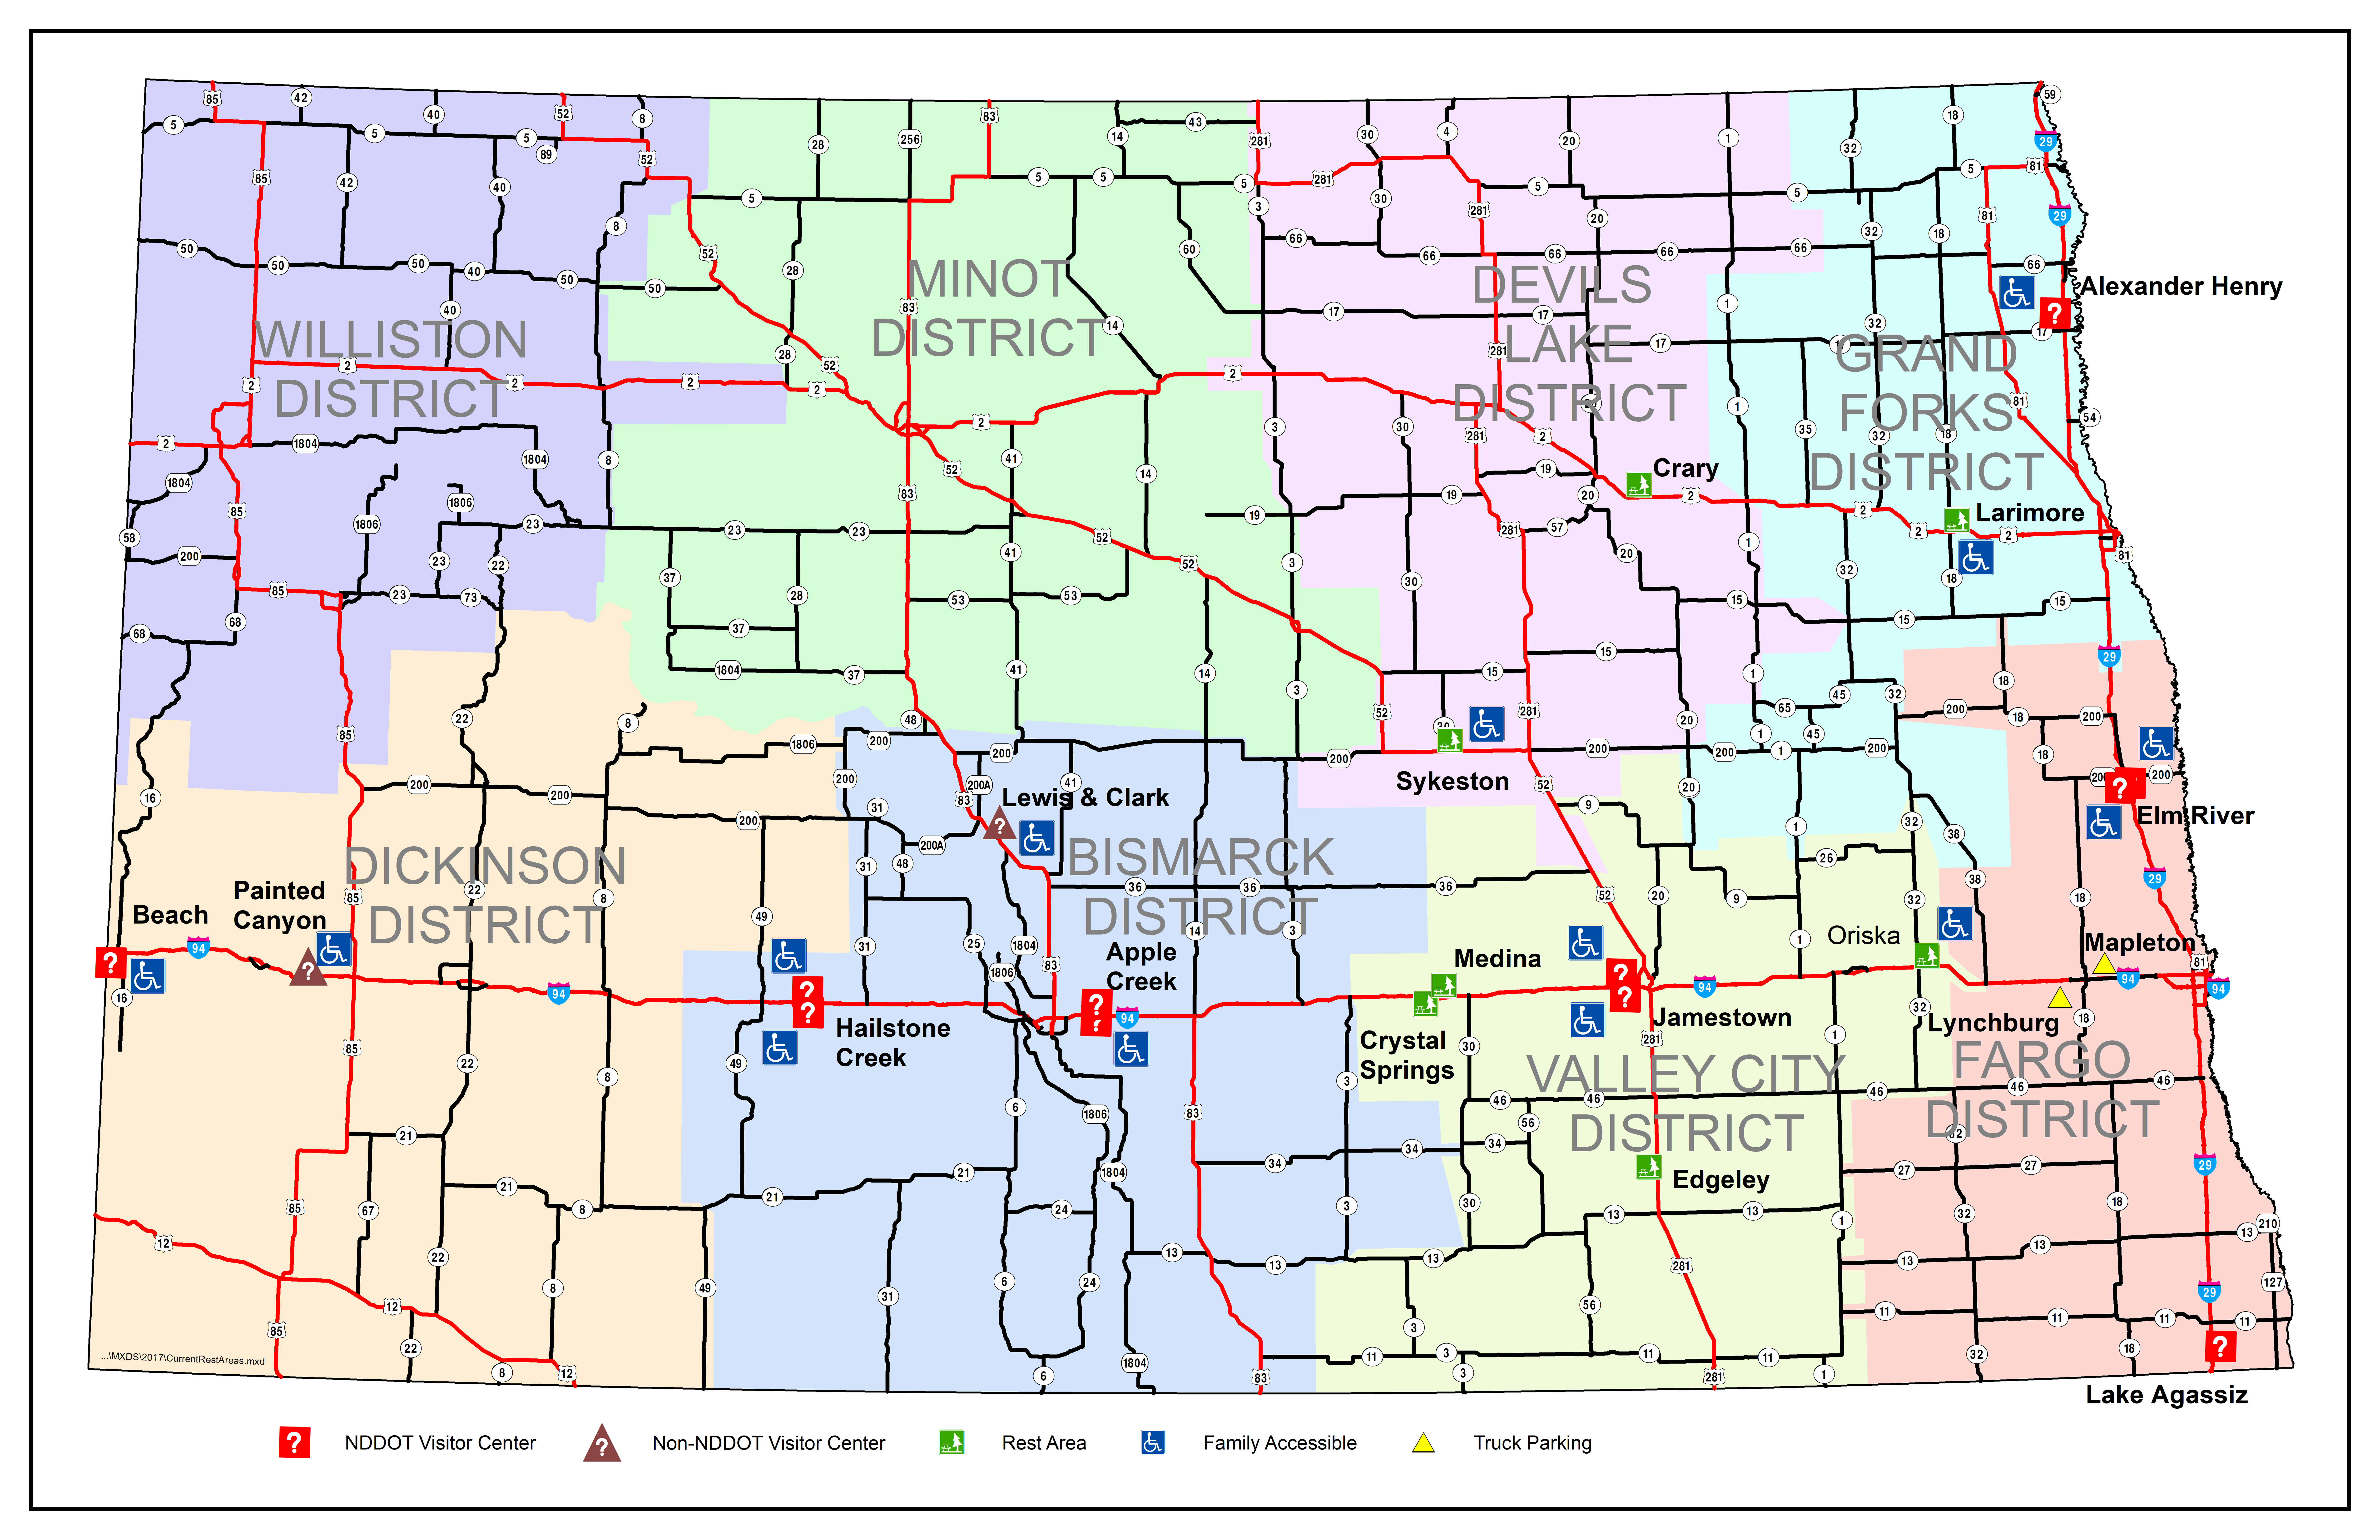 NDDOT - Visitor Centers and Rest Areas on south dakota dot road conditions map, n dakota road map, north dakota county roads, north dakota road restriction map, nd sd map, north dakota nd maps, esmeralda county nevada map, weather north dakota road map, north dakota road map printable,